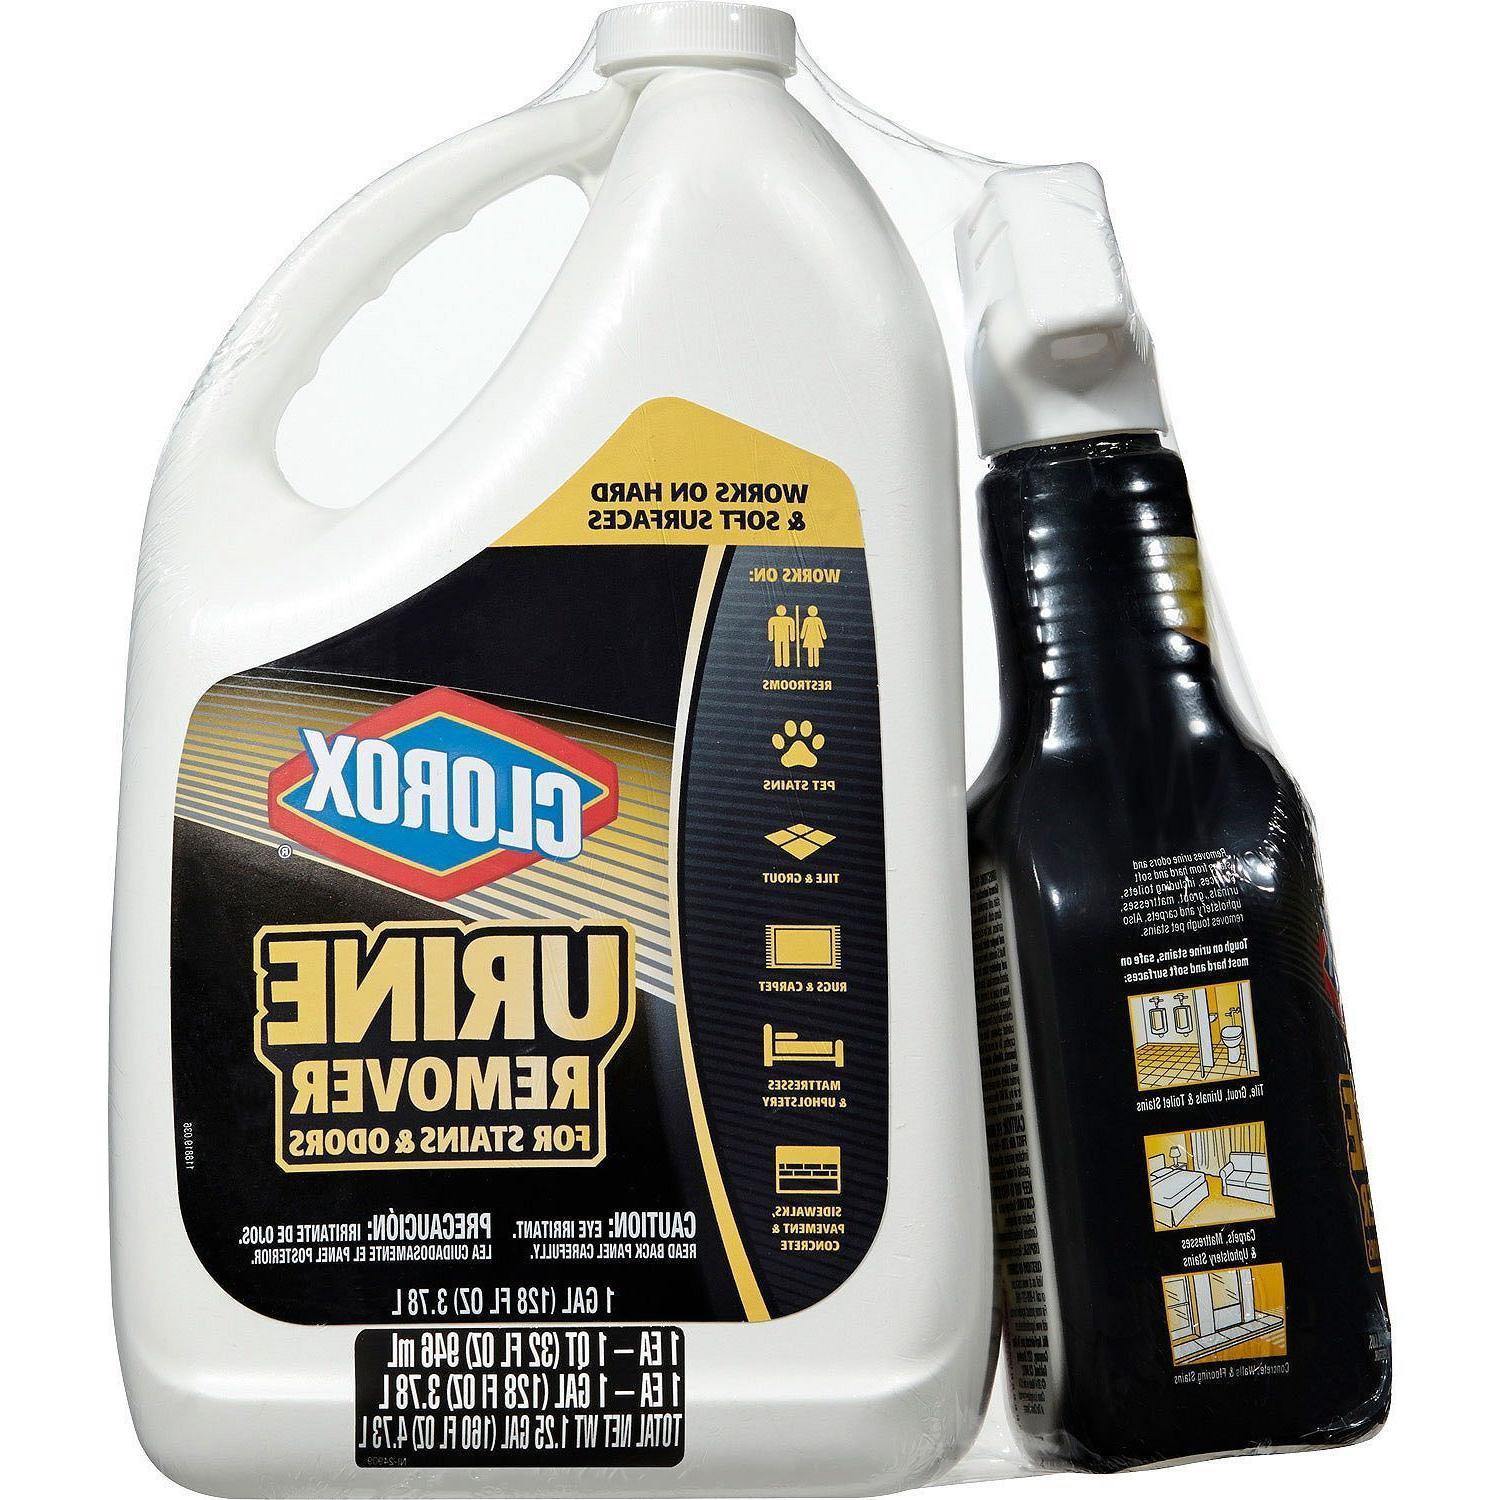 Clorox Remover Stains oz Spray and 128 oz